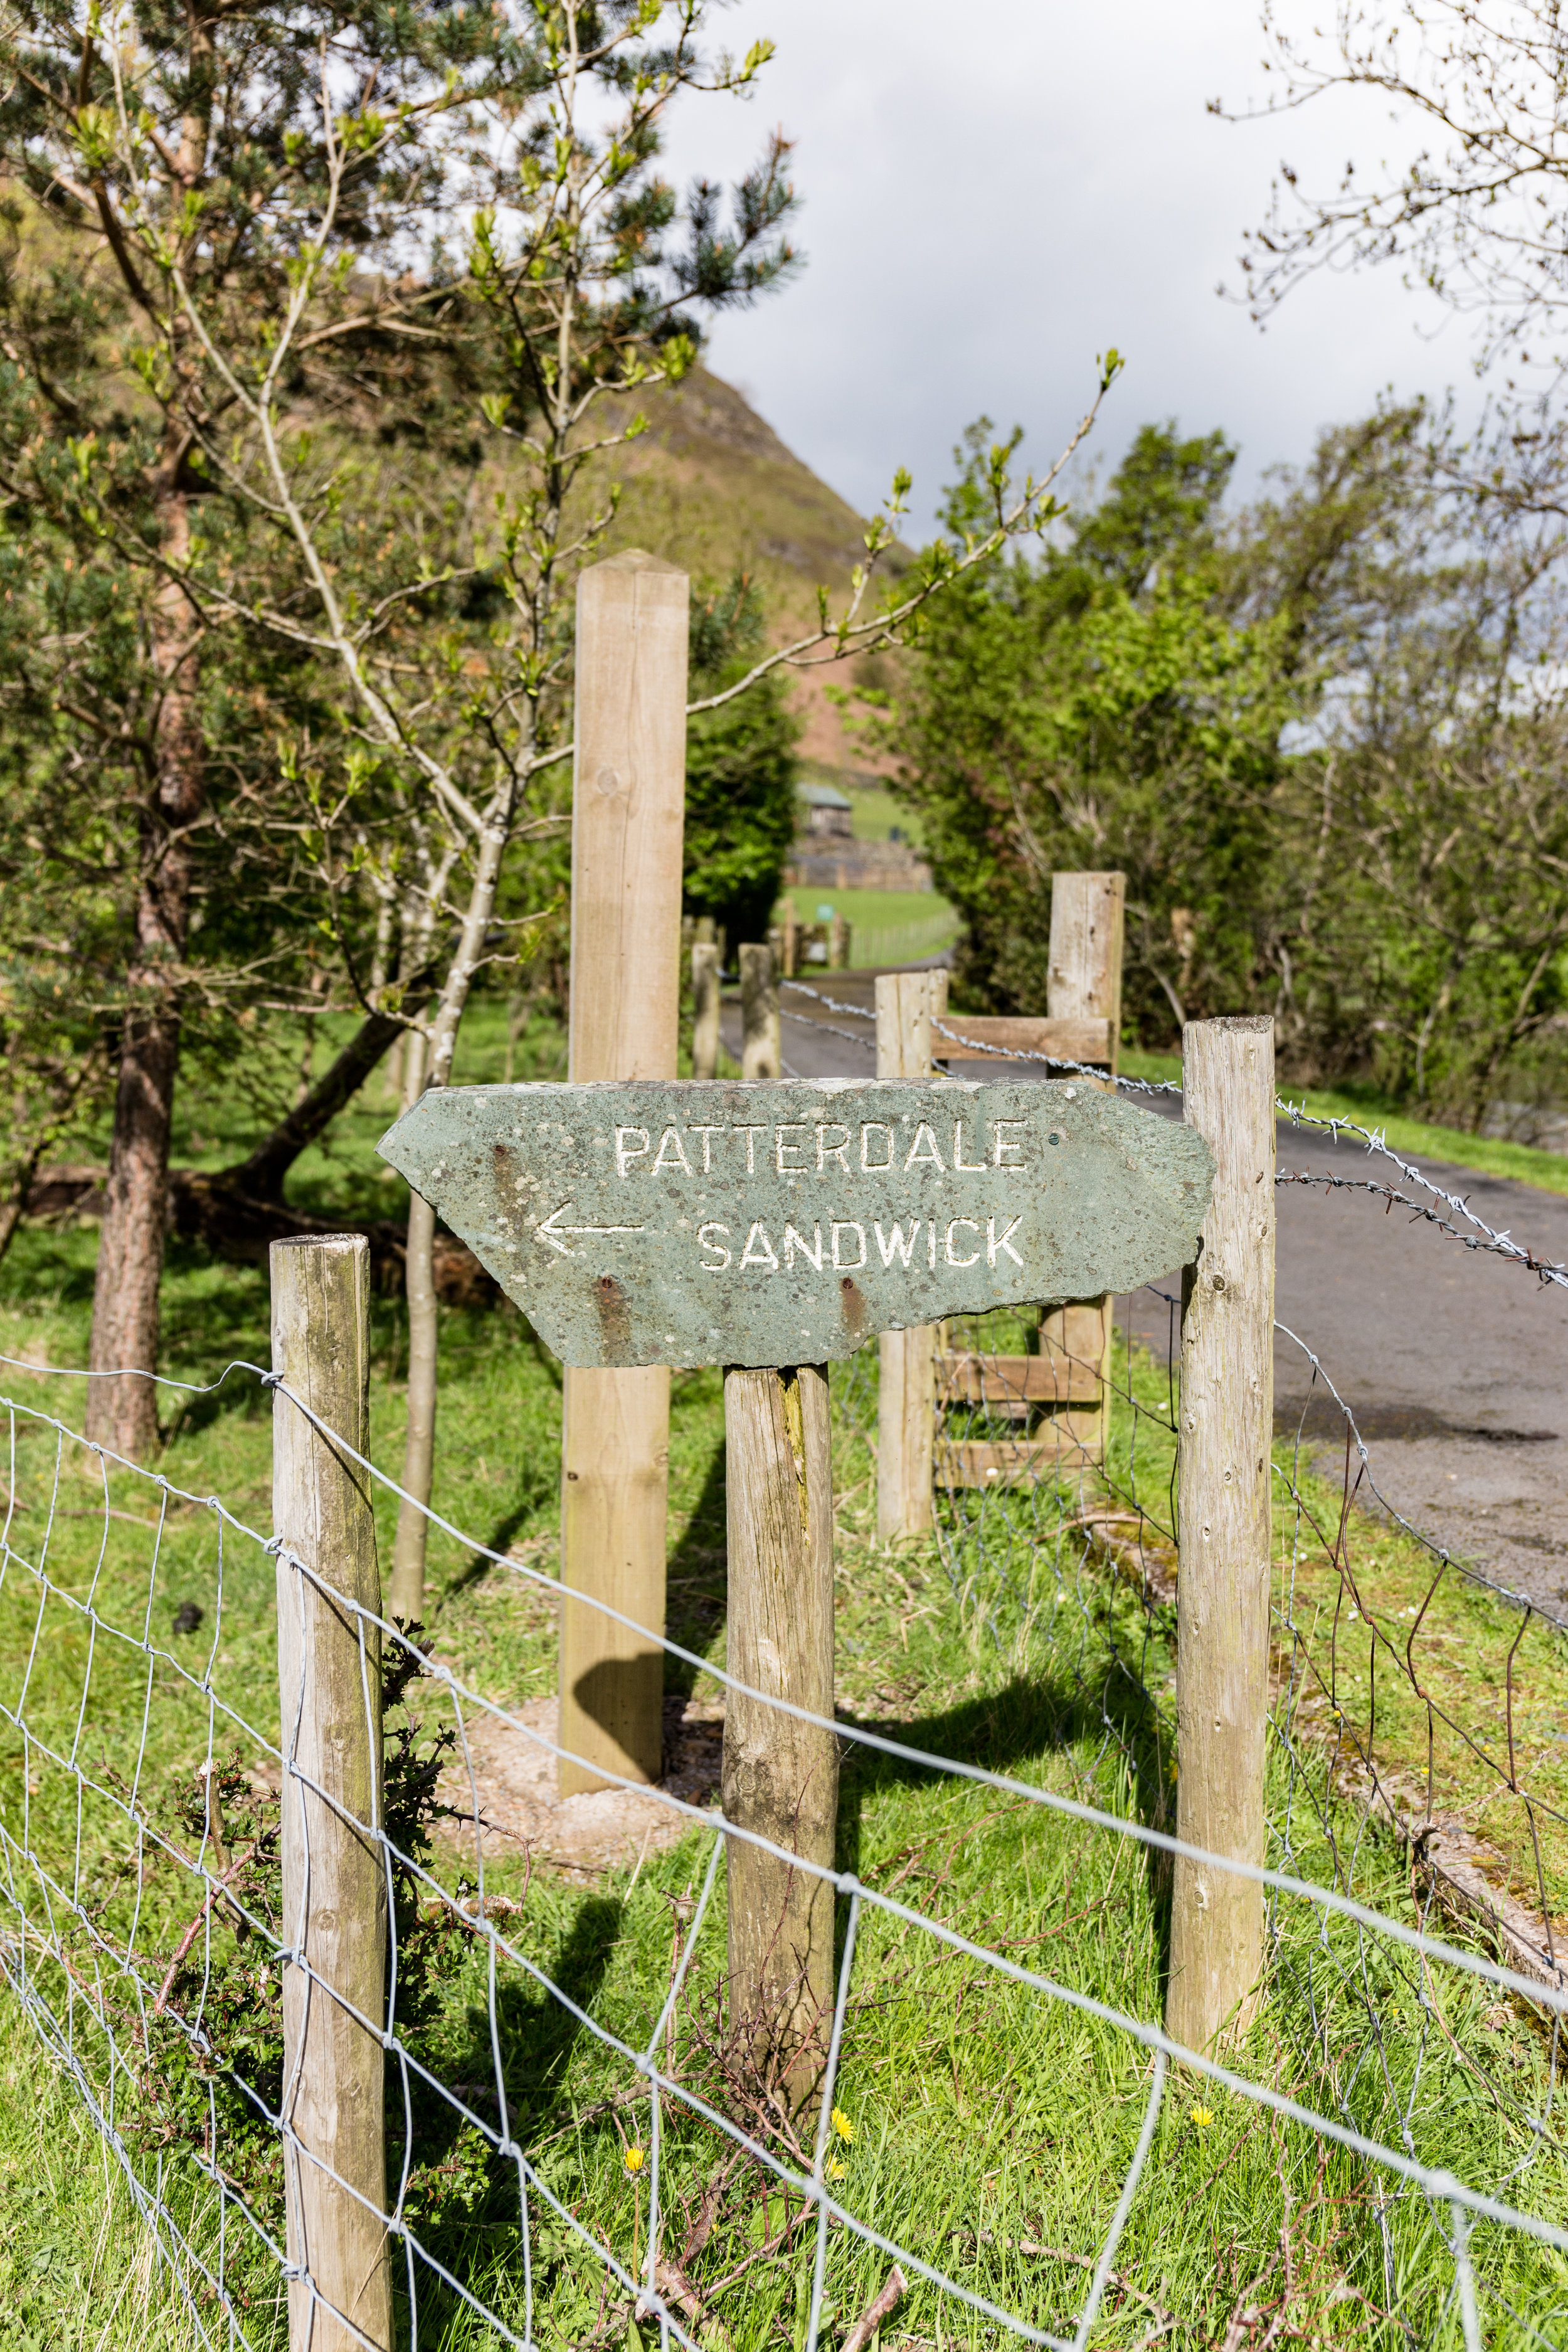 Well-signposted - heading to Patterdale!